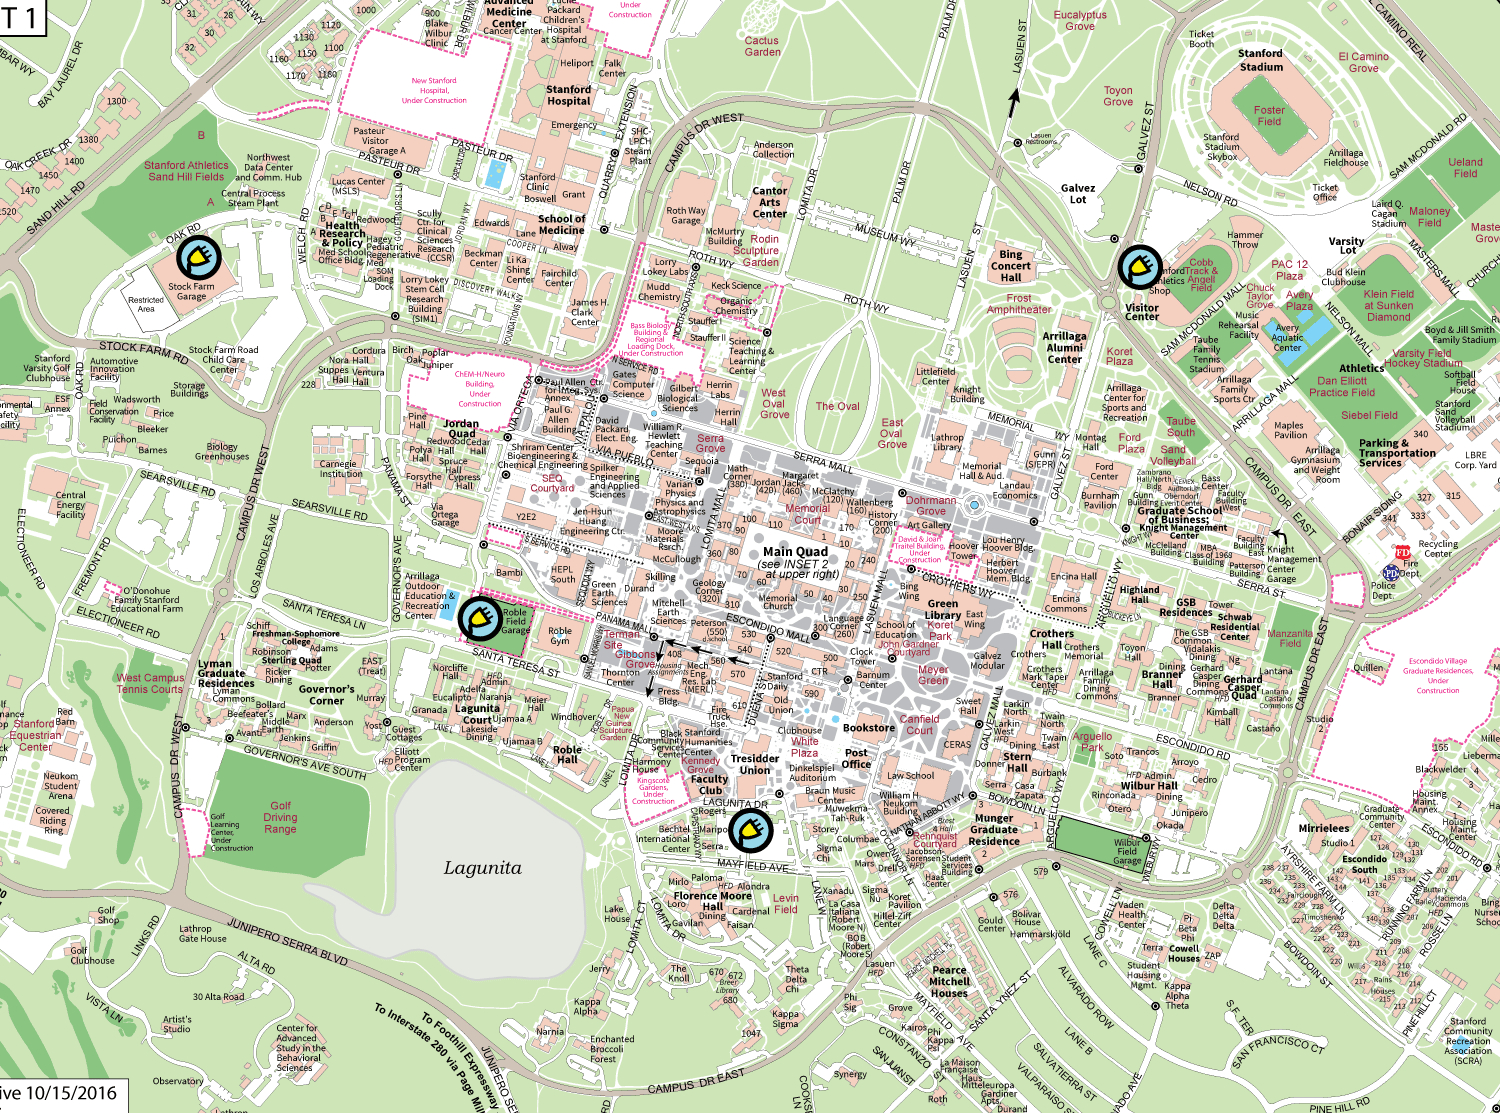 Find An Electric Vehicle Charging Station | Stanford Parking - California Electric Car Charging Stations Map